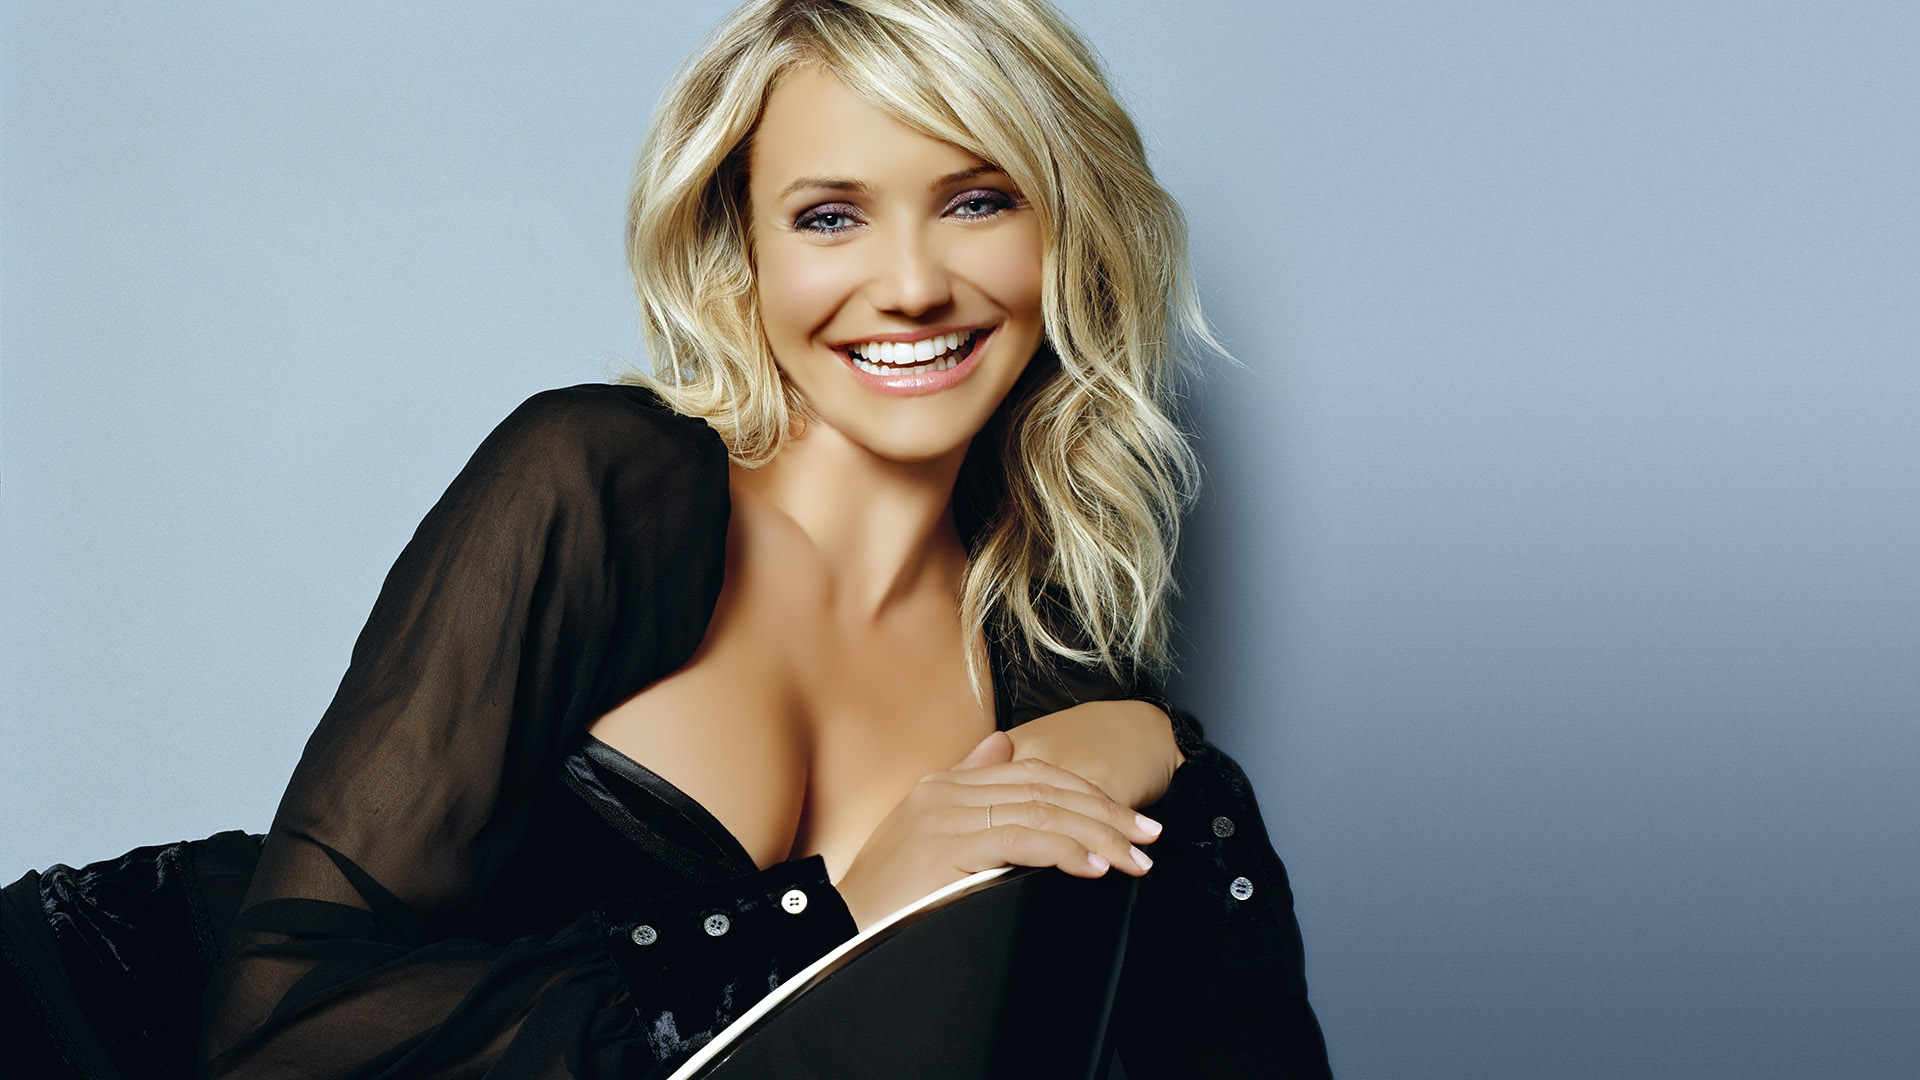 cameron diaz - photo #16